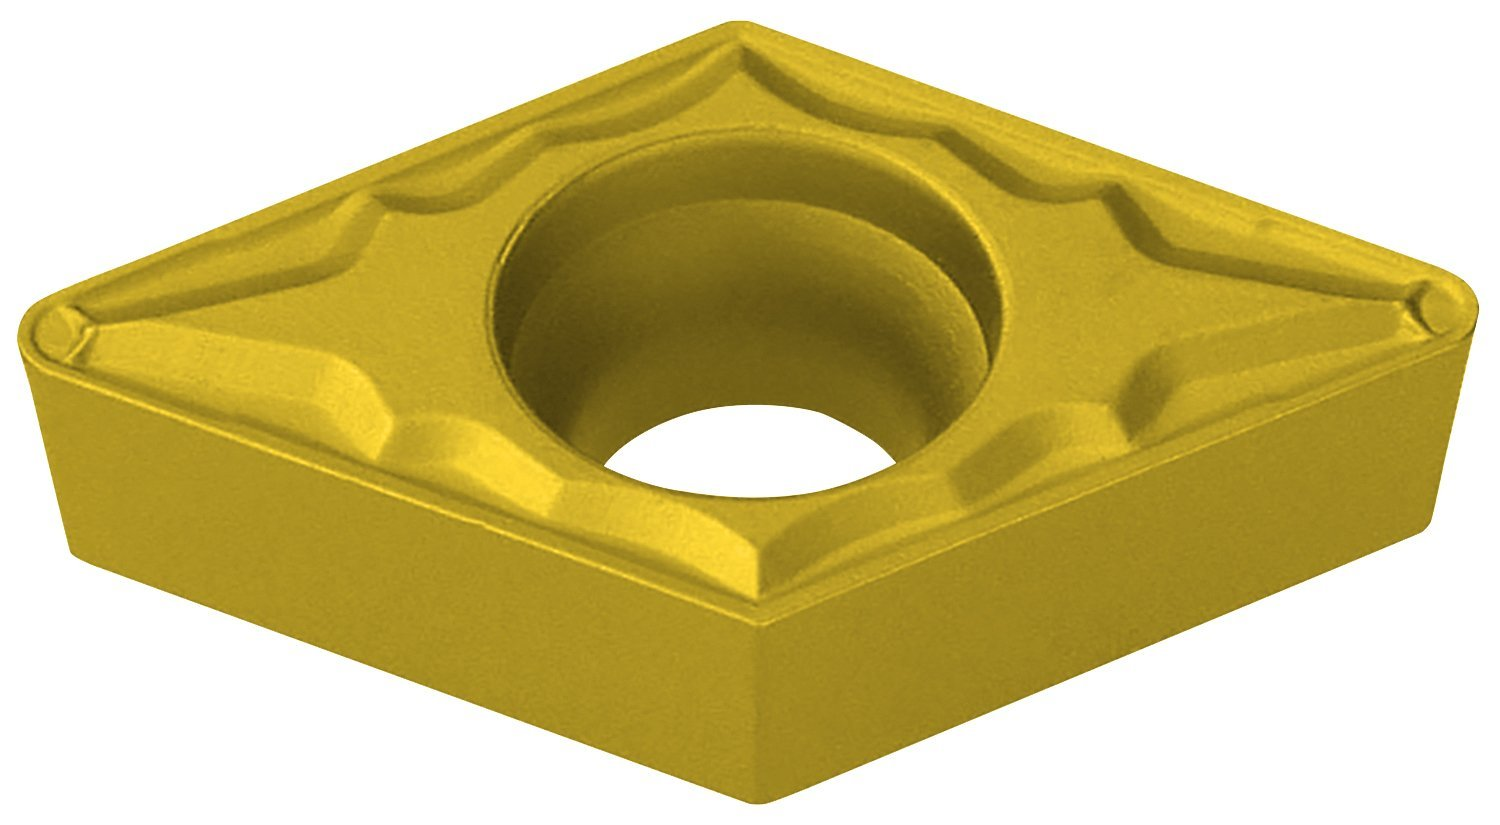 7 Degree Positive Clearance Angle Ultra-Dex DCMT 32.52 UD51 55 Degree Diamond Insert 5//32 Thickness 0.031 Corner Radius Pack of 10 0.375 Inscribe Circle Size UD51 Grade